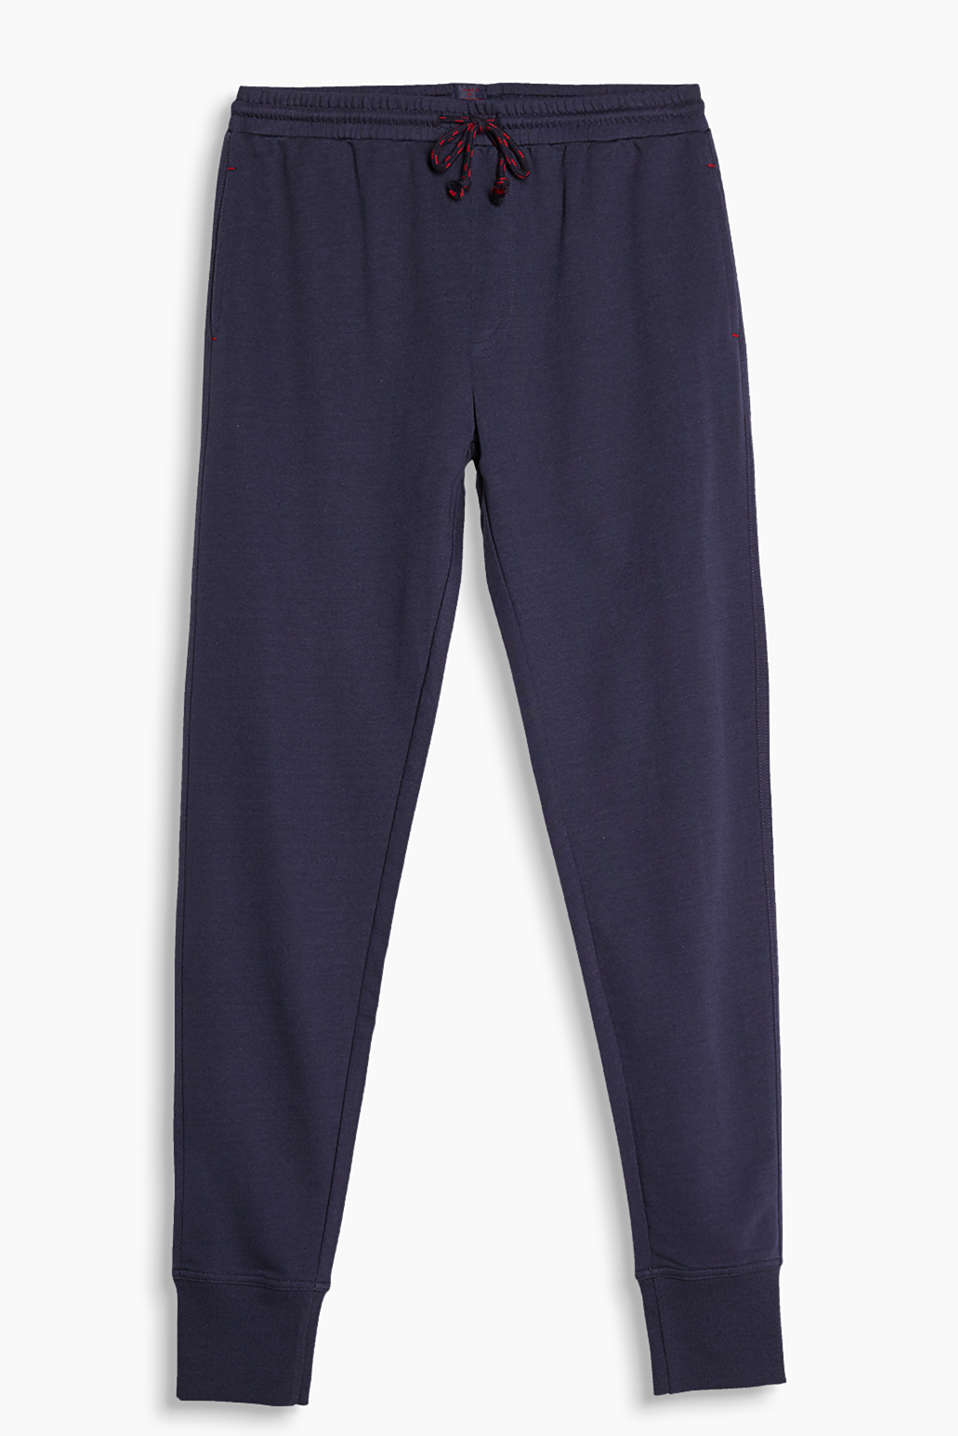 These soft jersey trousers are great for chilling: at home, playing sports and, not least, for sleeping in